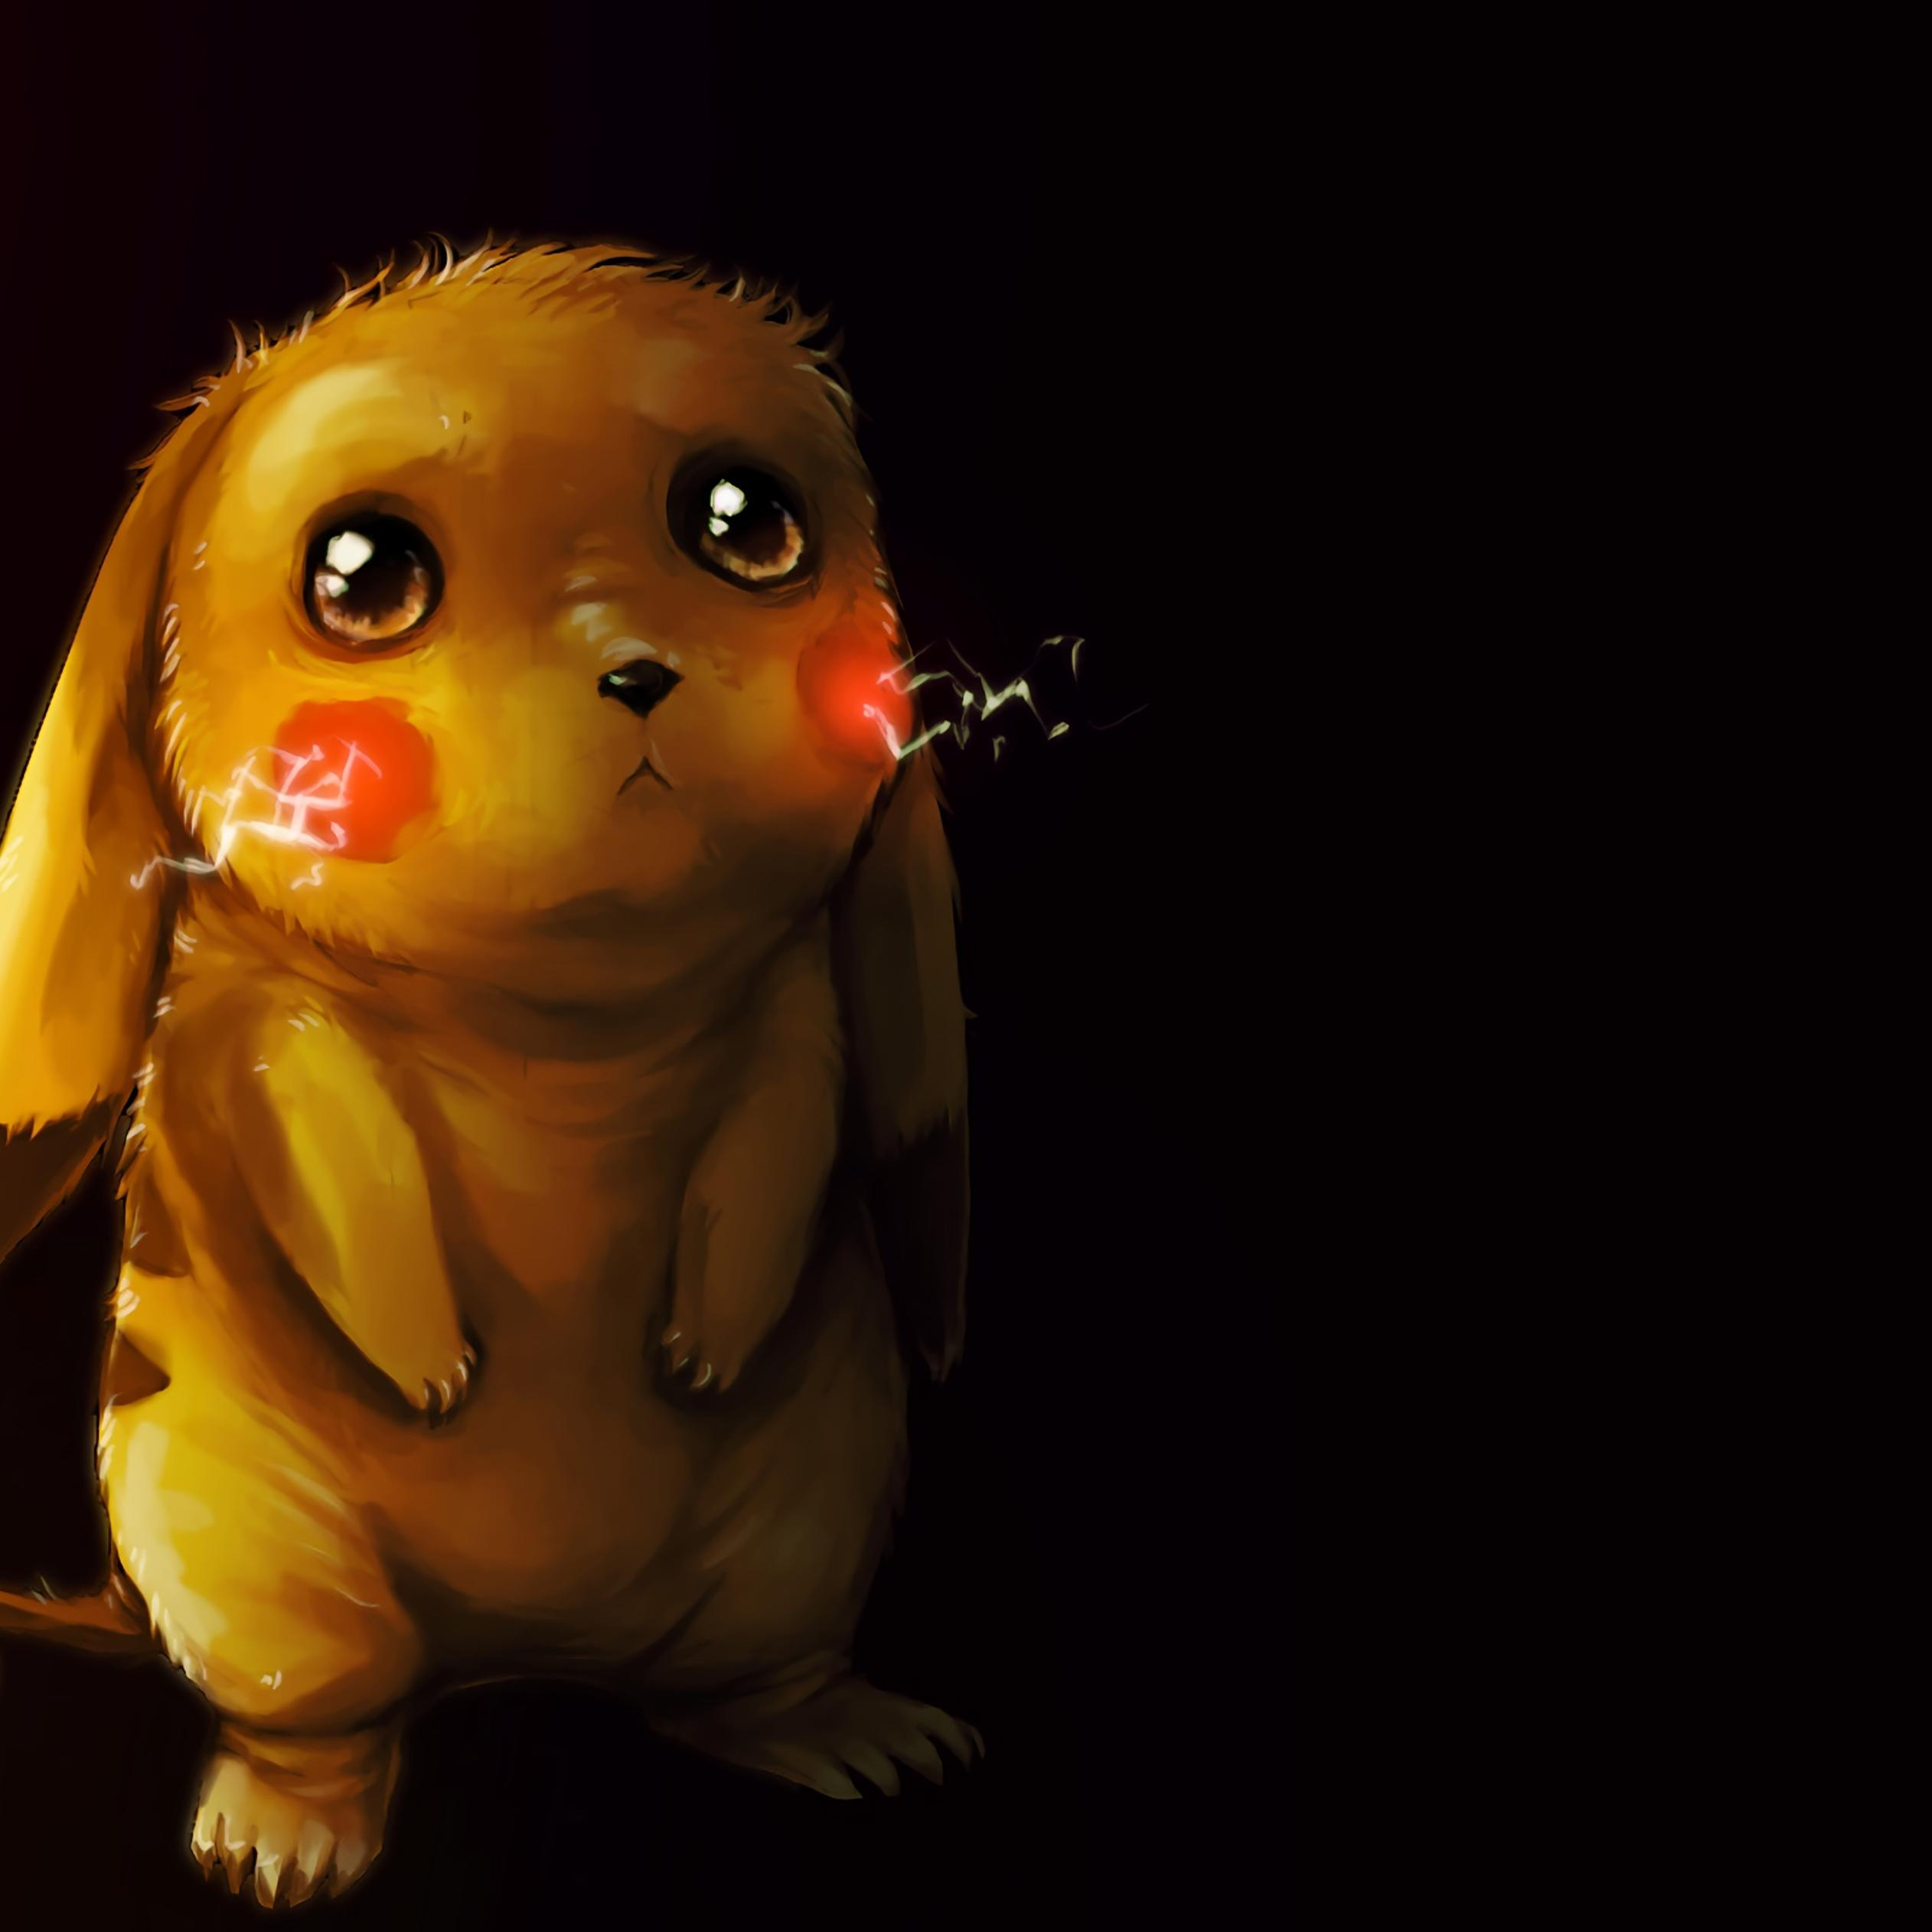 Sad Pokemon Puppy Eyes Wallpaper Download 2524x2524